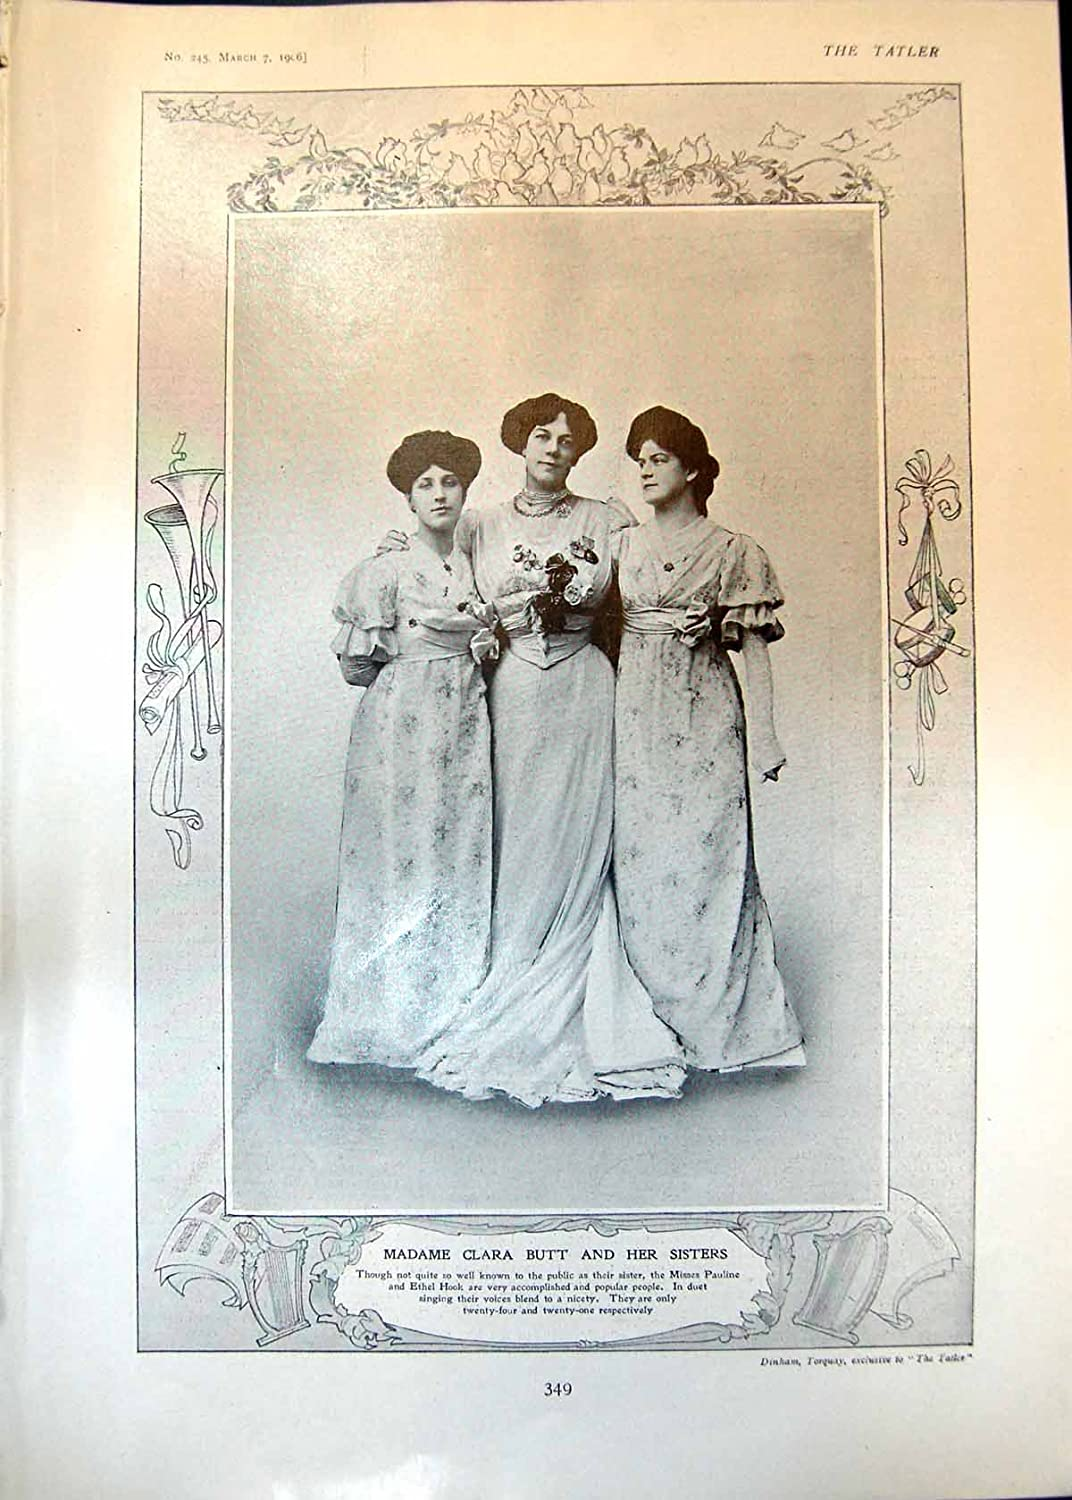 Old Print Clara Butt Sisters Pauline Ethel Hook Trolly Cables 1906 349Q019 old-print Q0191906349